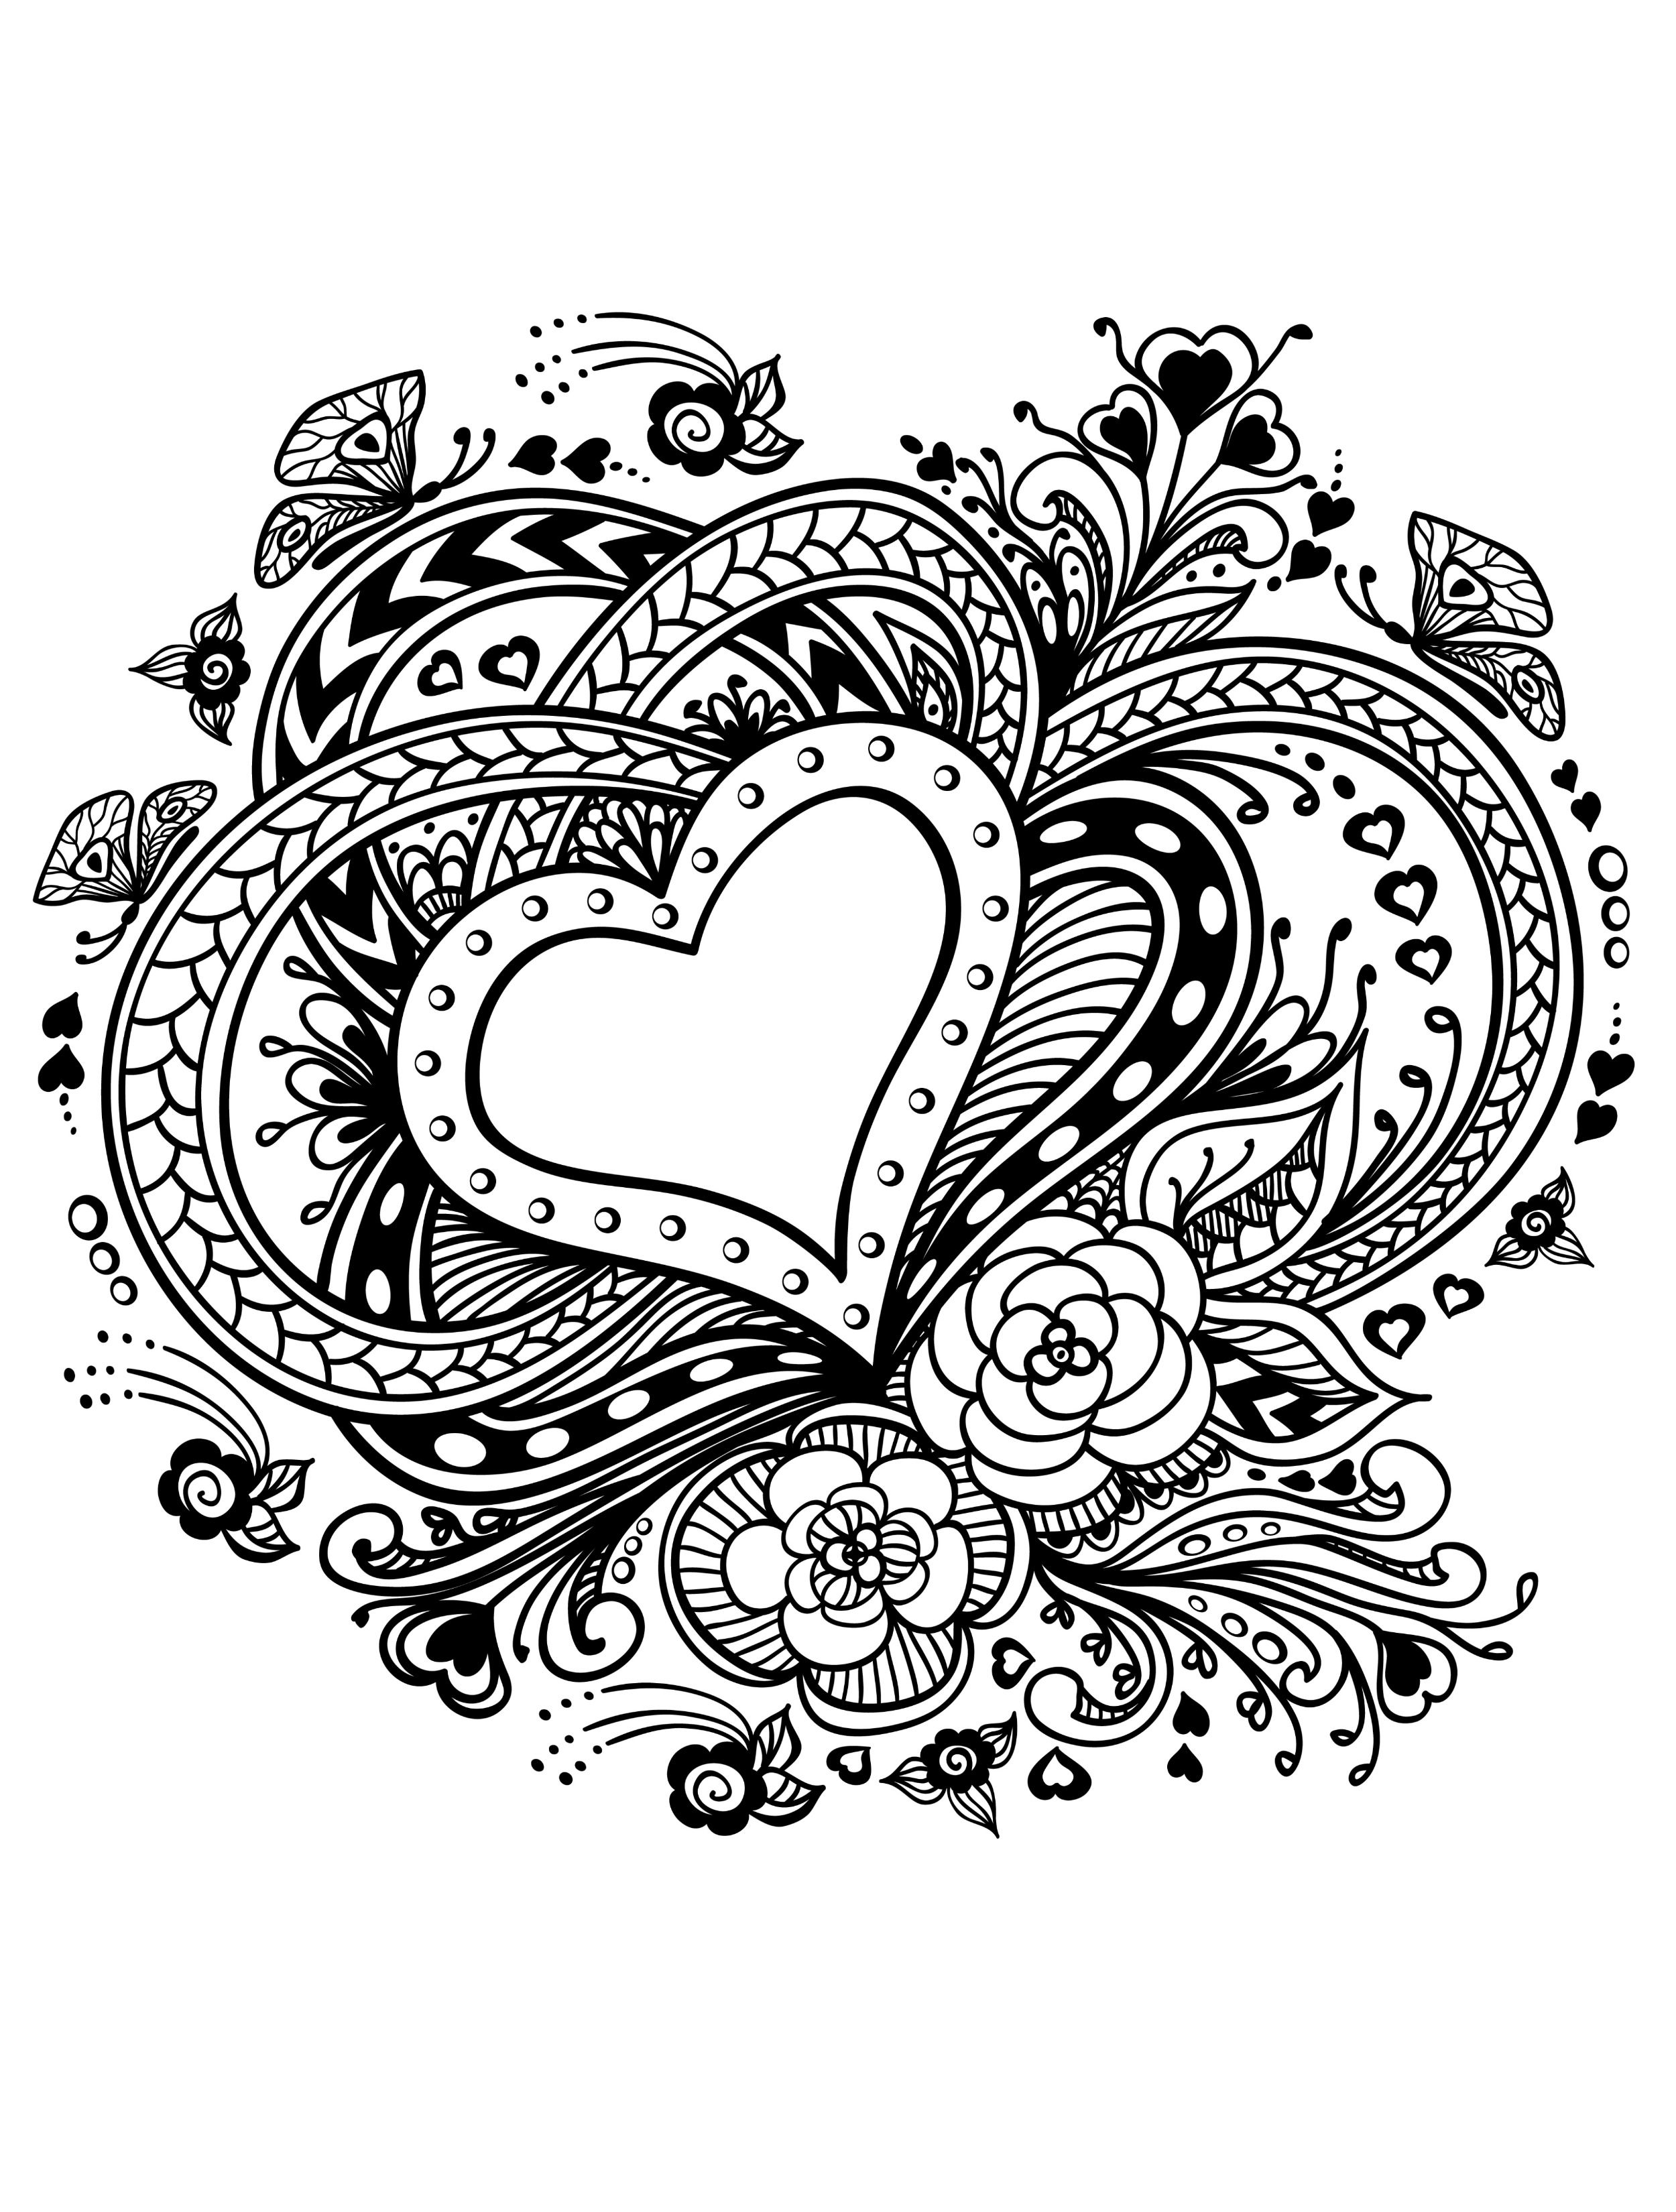 Beautiful Valentines Coloring Page For Adults Heart Coloring Pages Valentine Coloring Pages Love Coloring Pages